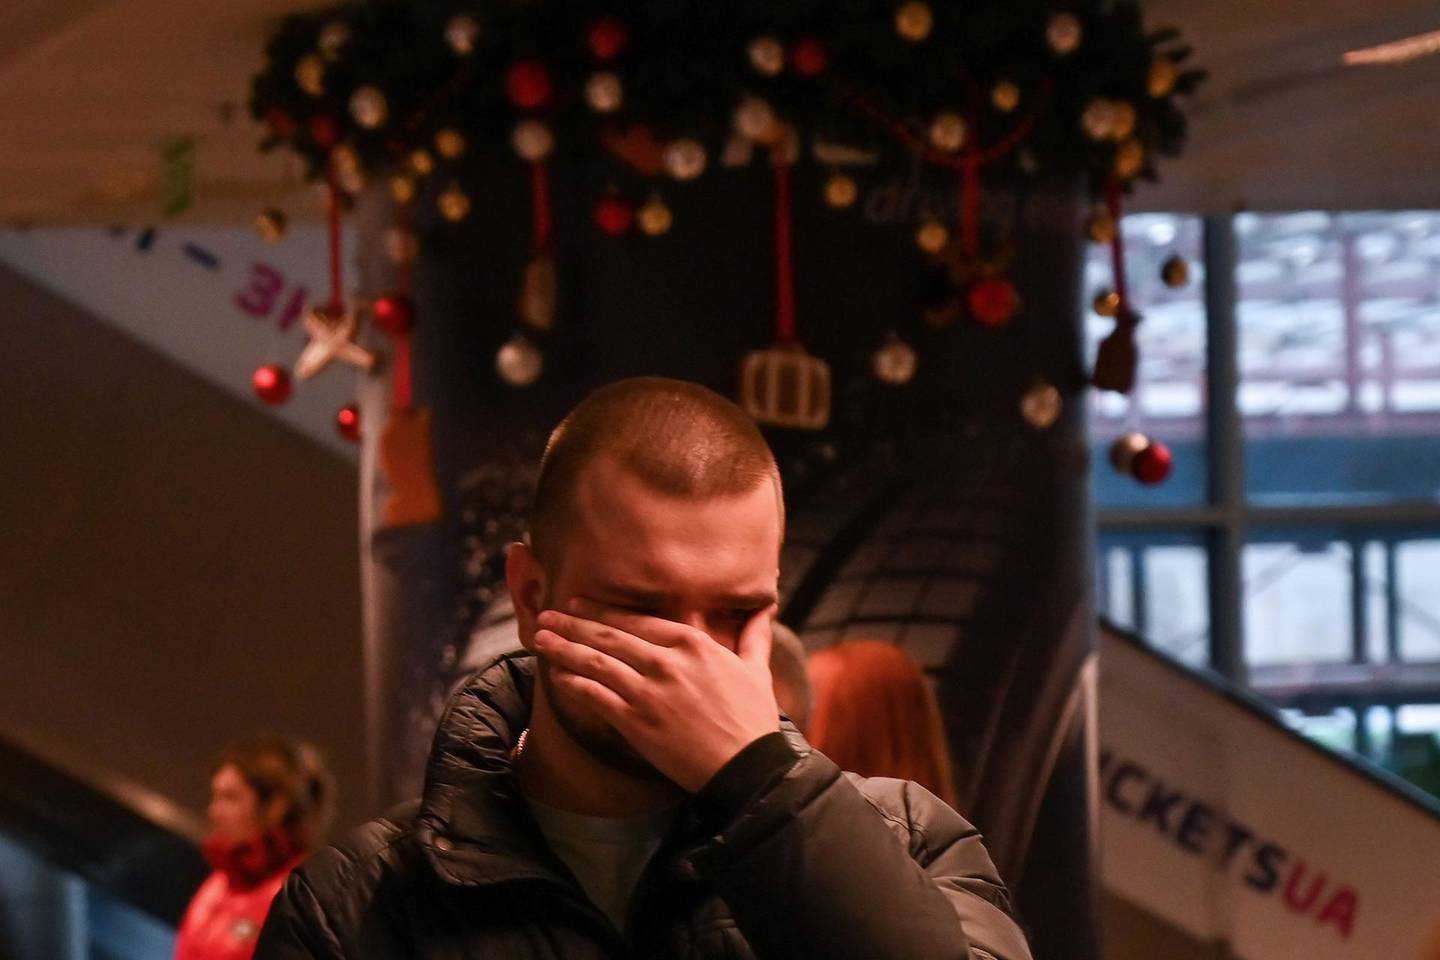 A relative of passengers and crew members of the crashed Ukraine International Airlines Flight PS752 reacts at the Boryspil airport outside Kiev on January 8, 2020. All passengers and crew on board the Ukrainian Boeing 737 plane that crashed shortly after take-off from Tehran on January 8, 2020 were killed, Ukrainian President Volodymyr Zelensky said. / AFP / Sergei Supinsky